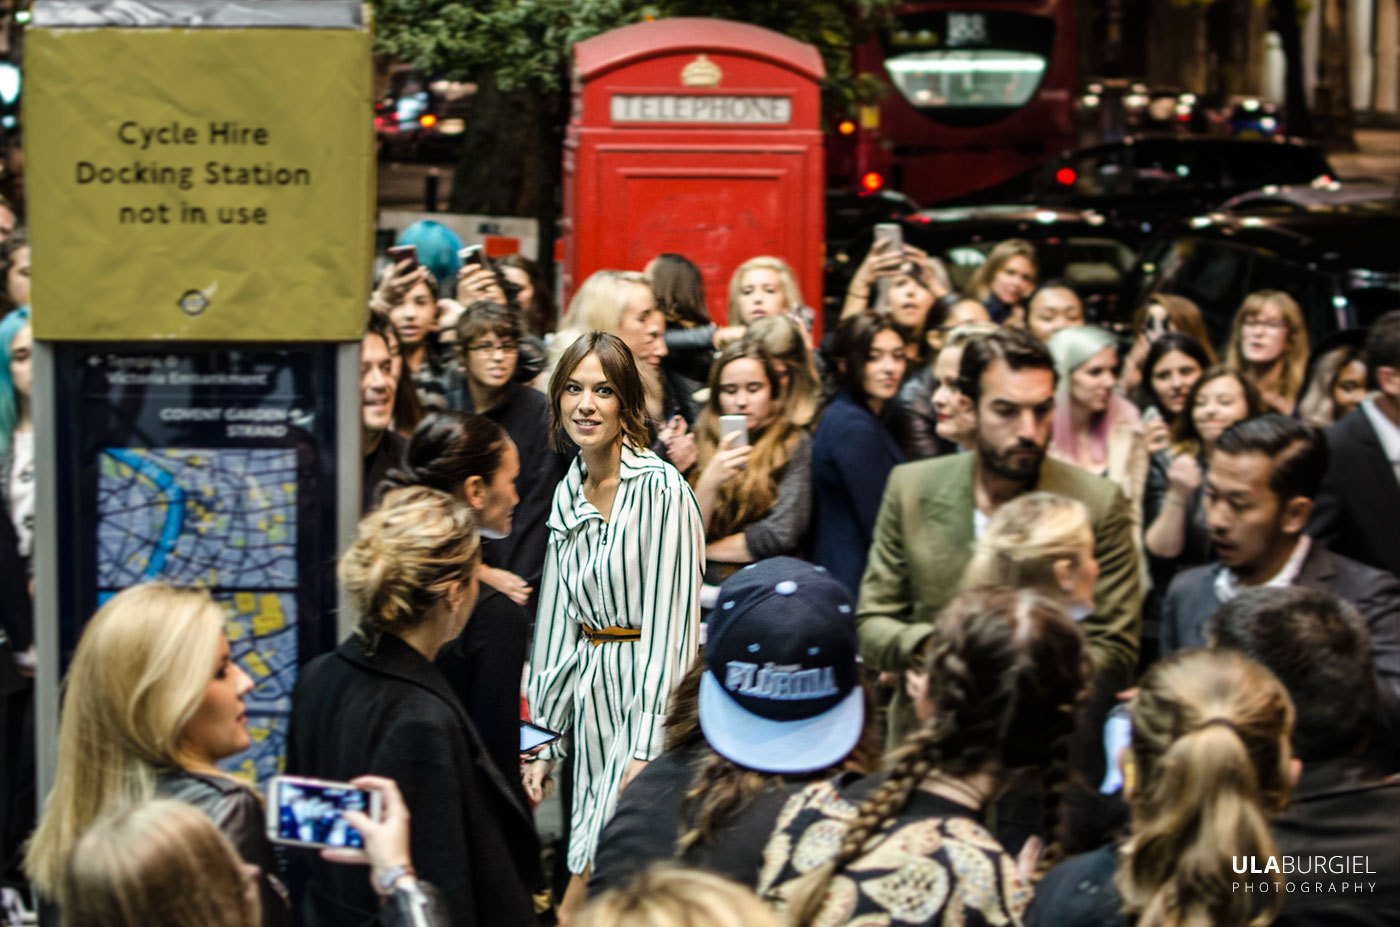 Ula Burgiel photography London Fashion Week, Cara Delevingne, louis vuitton series 3 Alexa Chung Celebrity photography